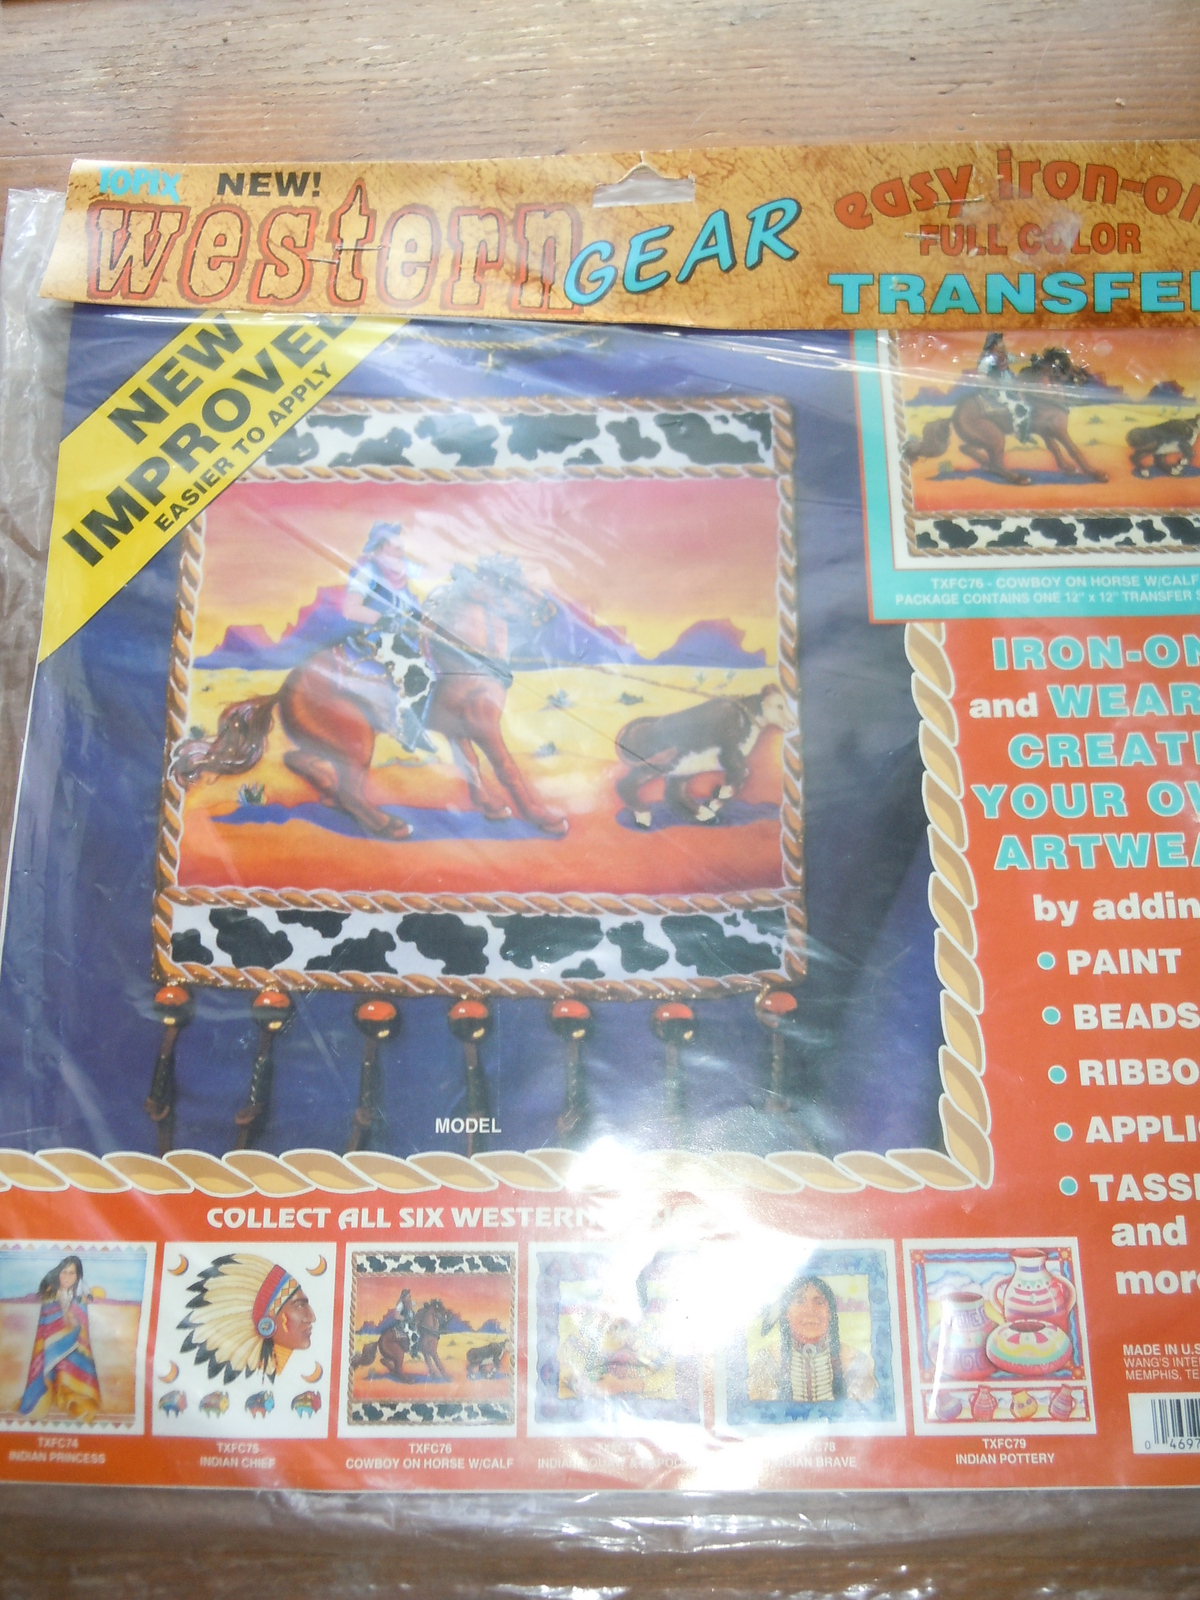 Topix Western Gear Cowboy on Horse With Calf Iron On Transfer New in Package - $4.99